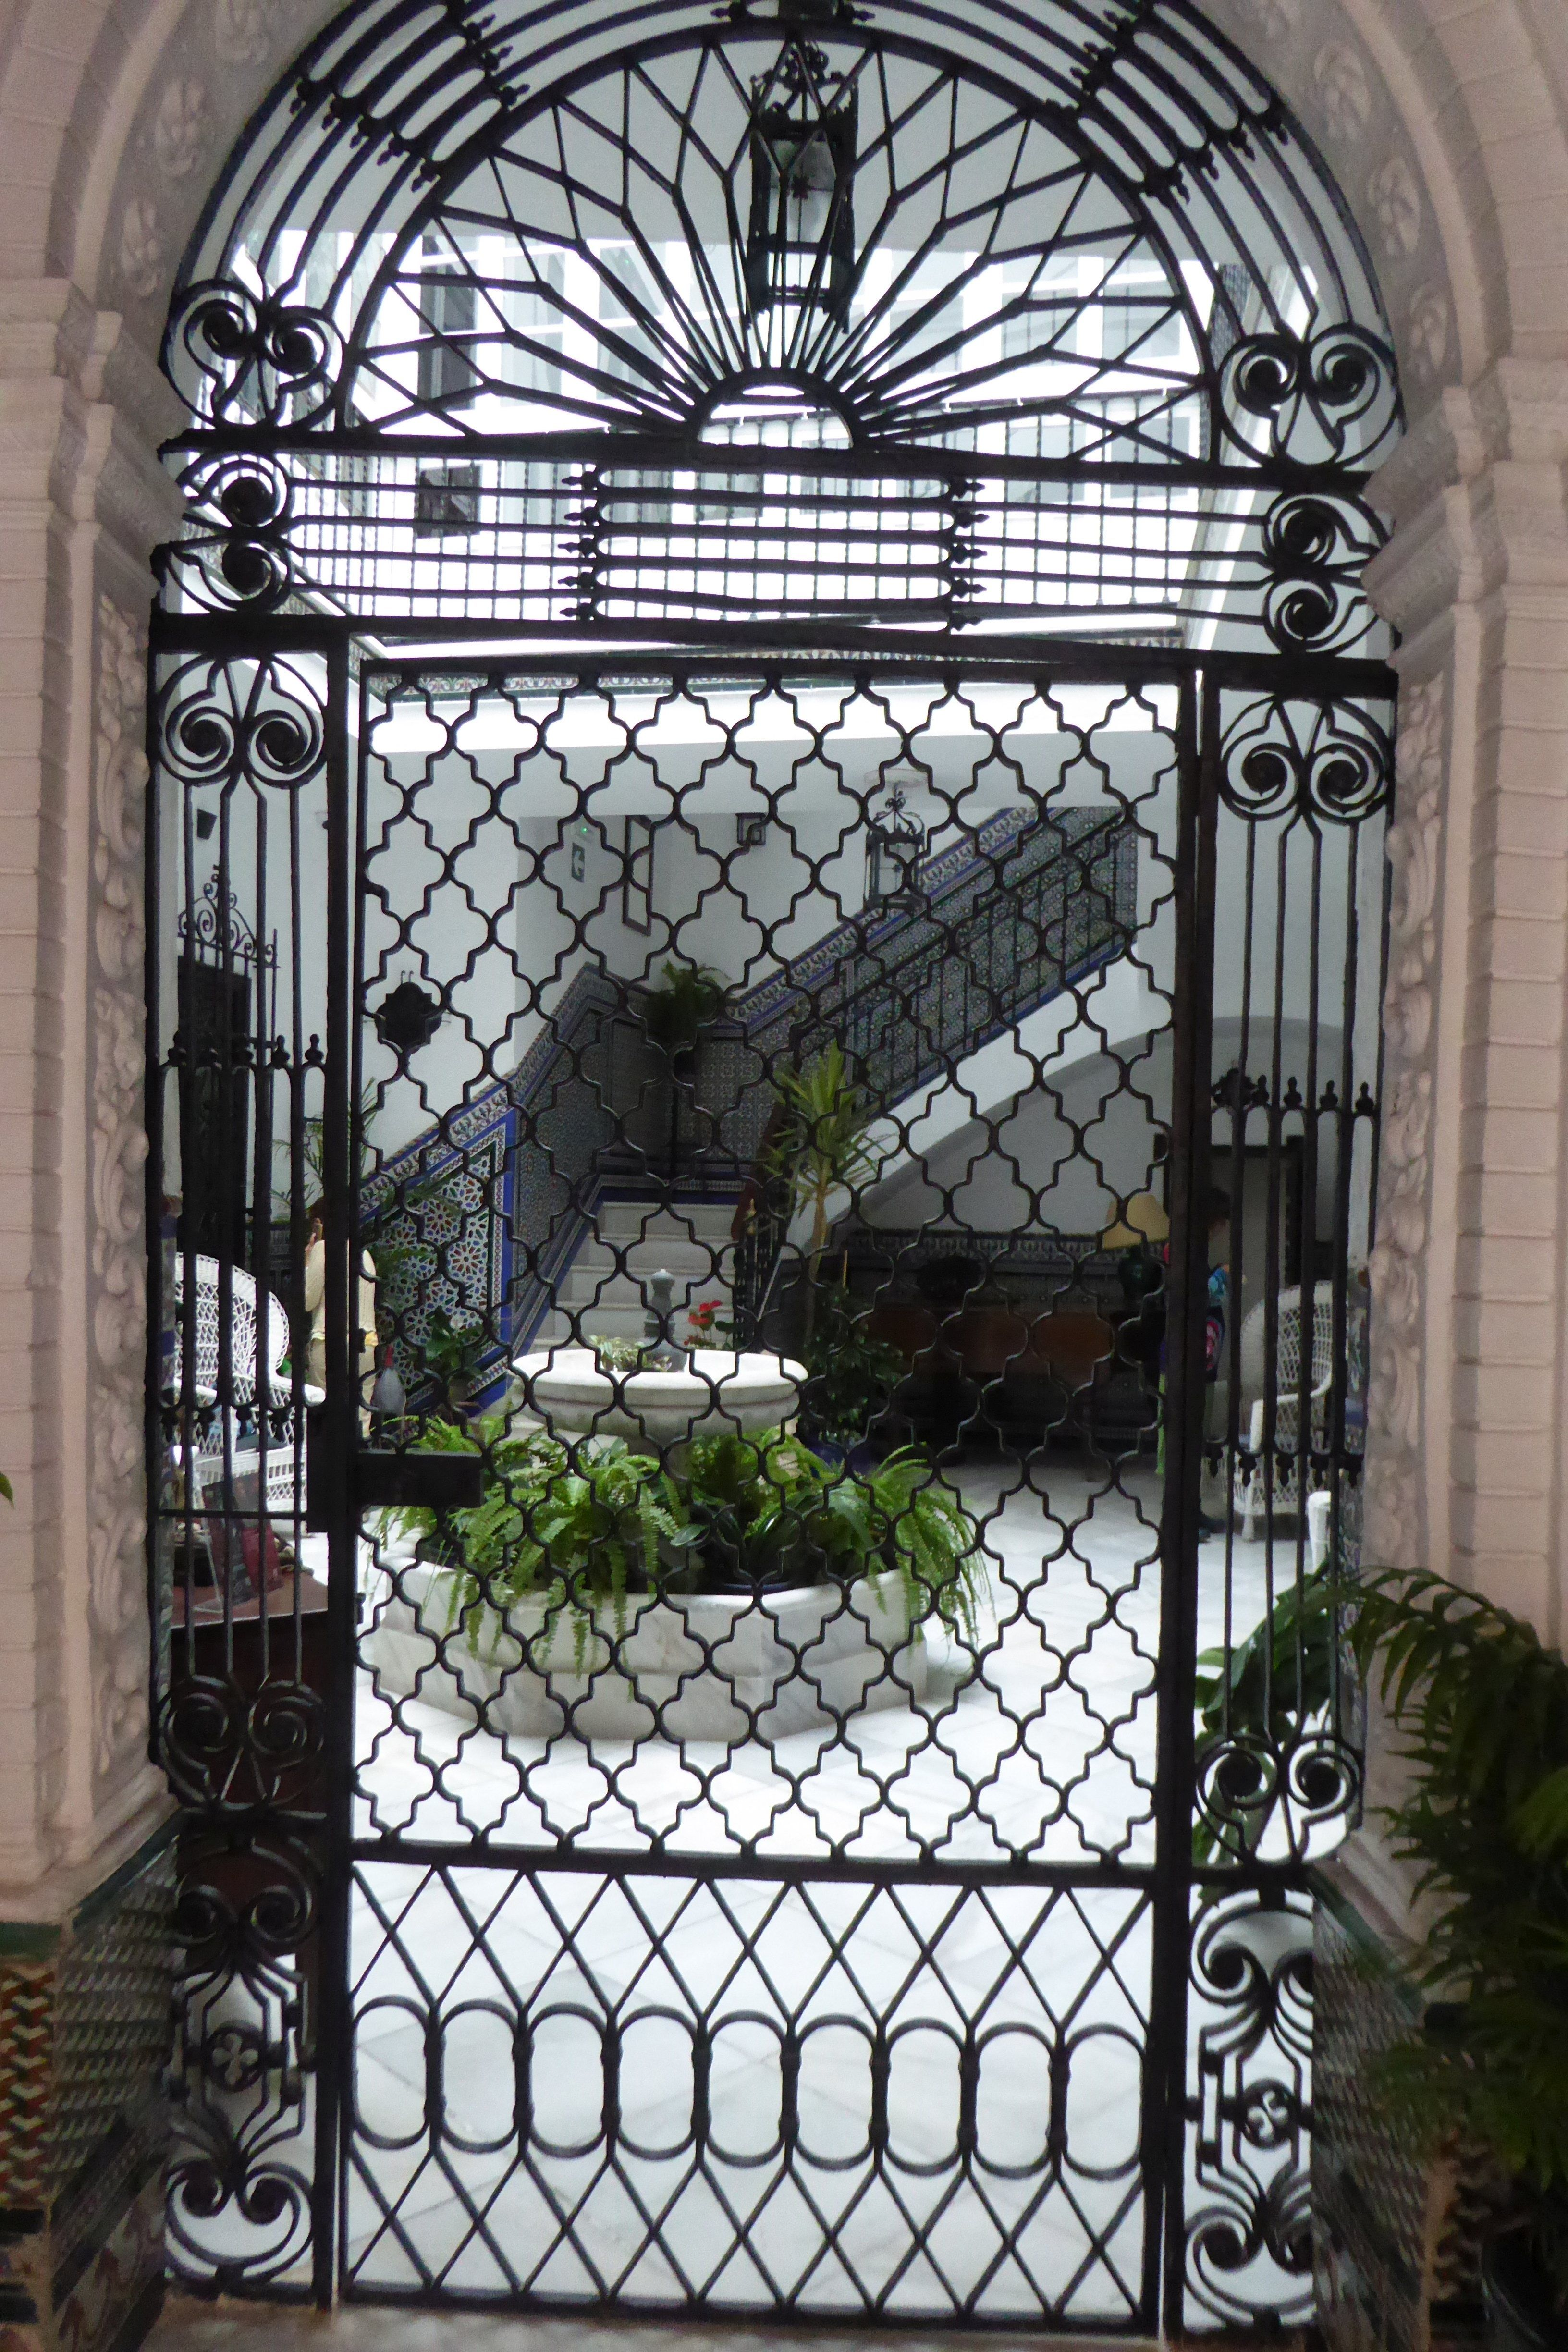 Wrought Iron Door Gate To A Courtyard At A Private Residence In